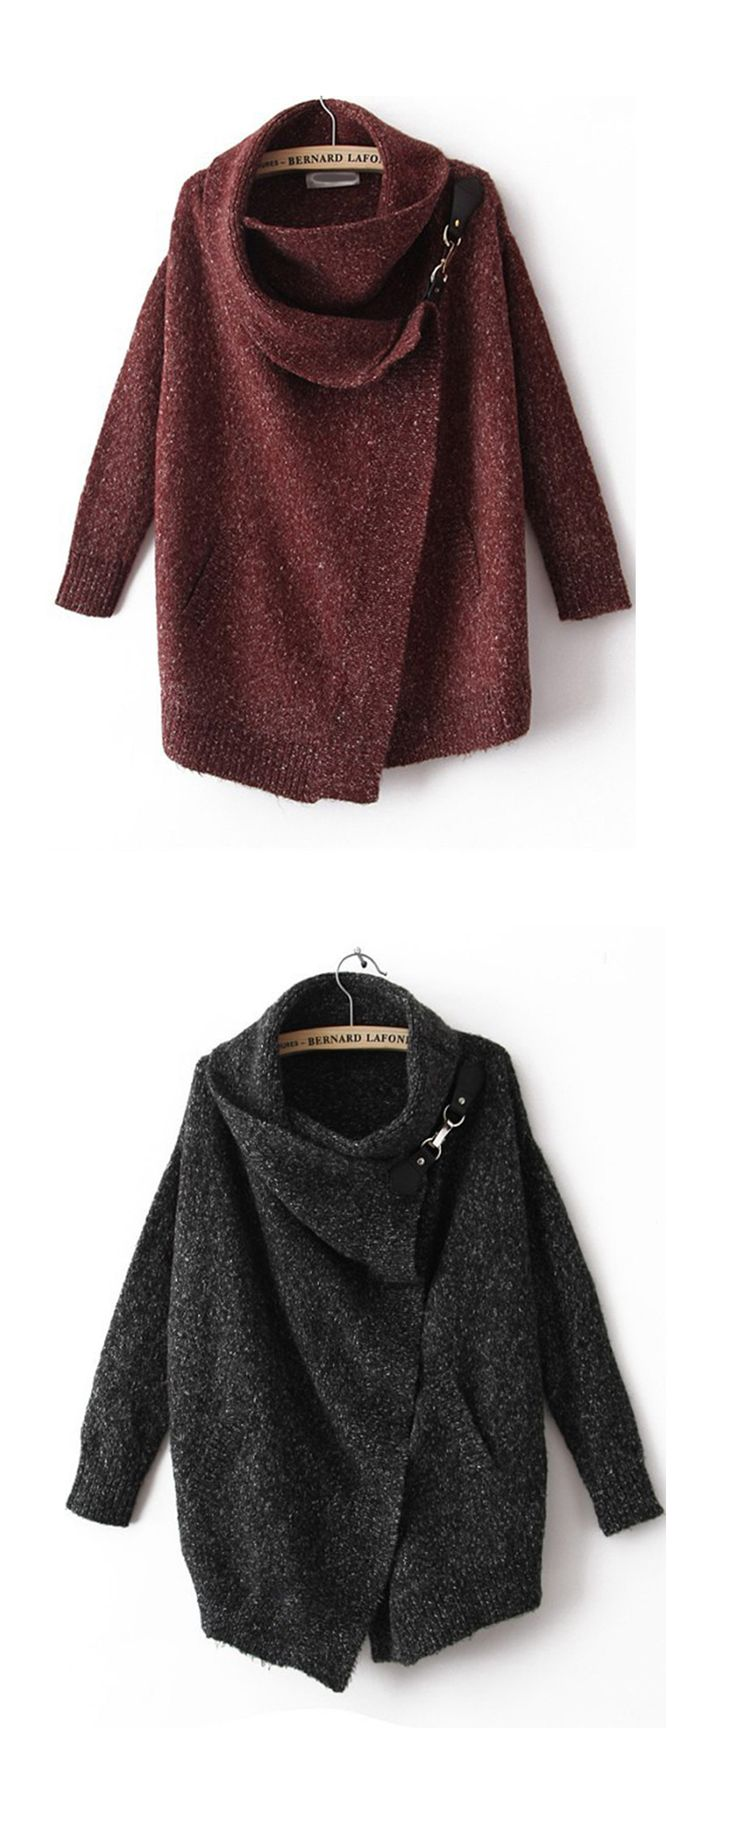 Winter colors: Black or burgundy Lapel Ouch Cardigan Sweater, feature in Cocoon collar and asymmetric design .More cheap cardigans at shein.com